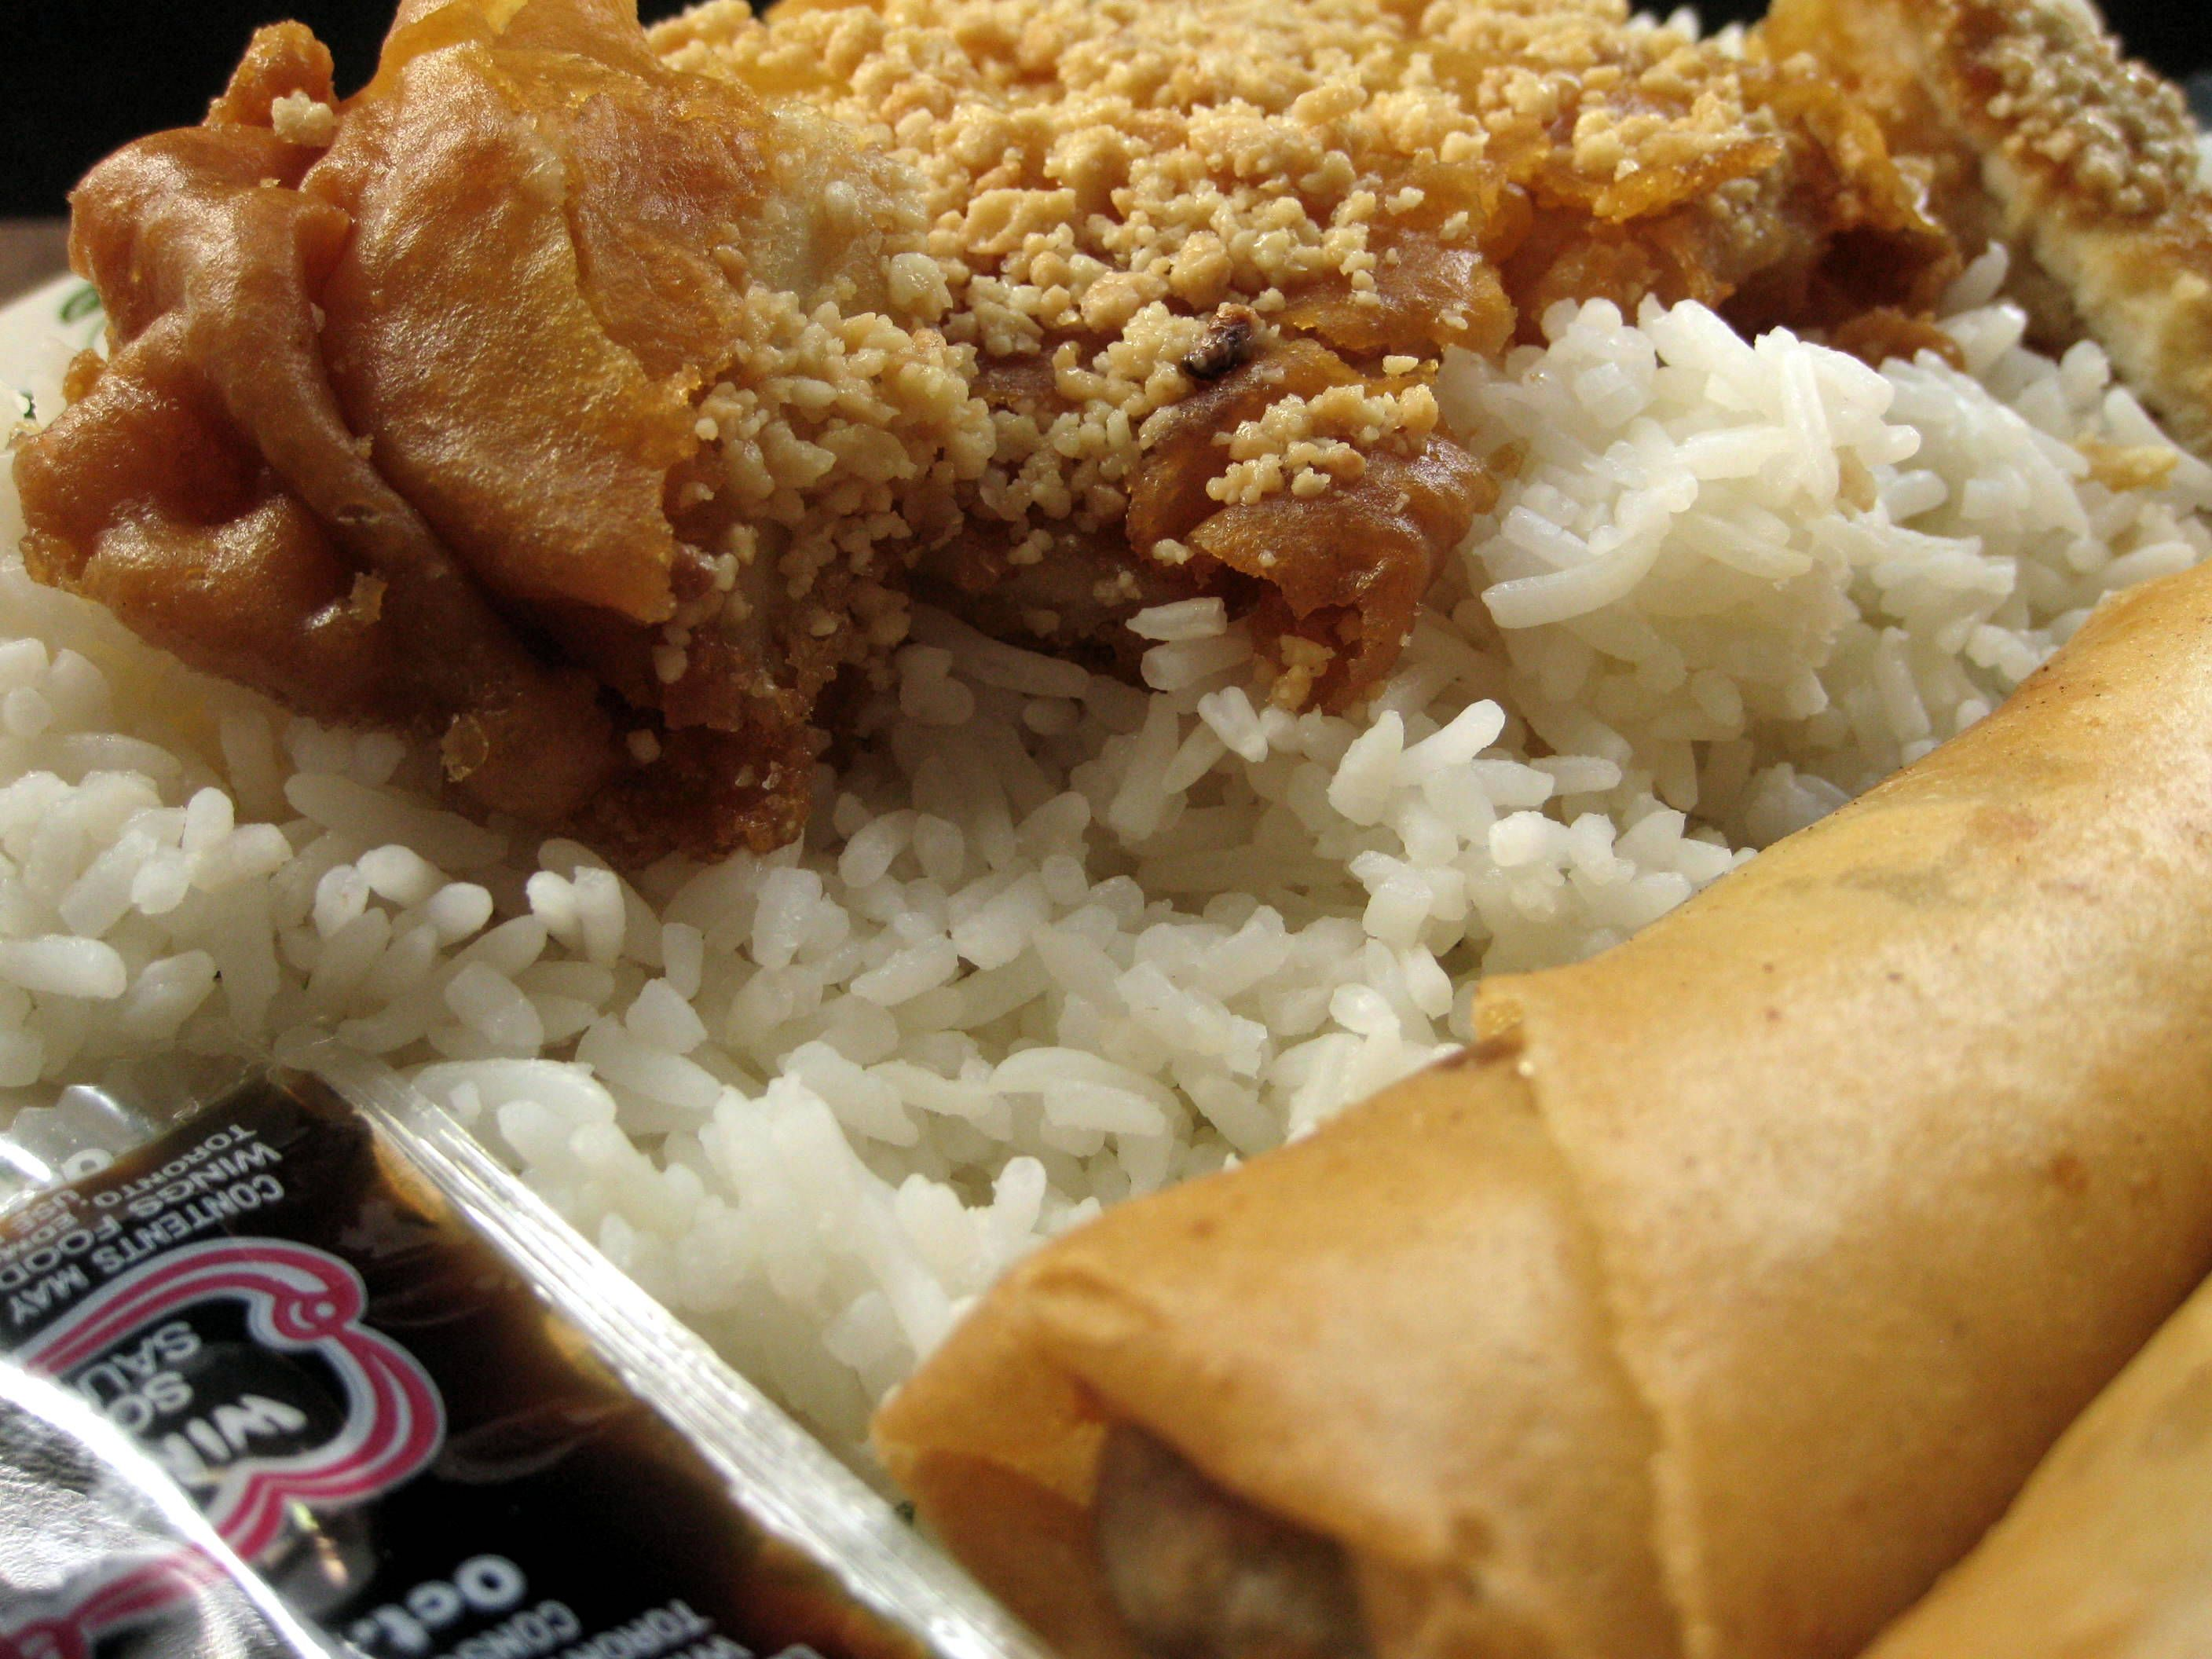 April 5 - lunch (almond chicken, eggrolls and white rice) #photoadayApril with @fatmumslim